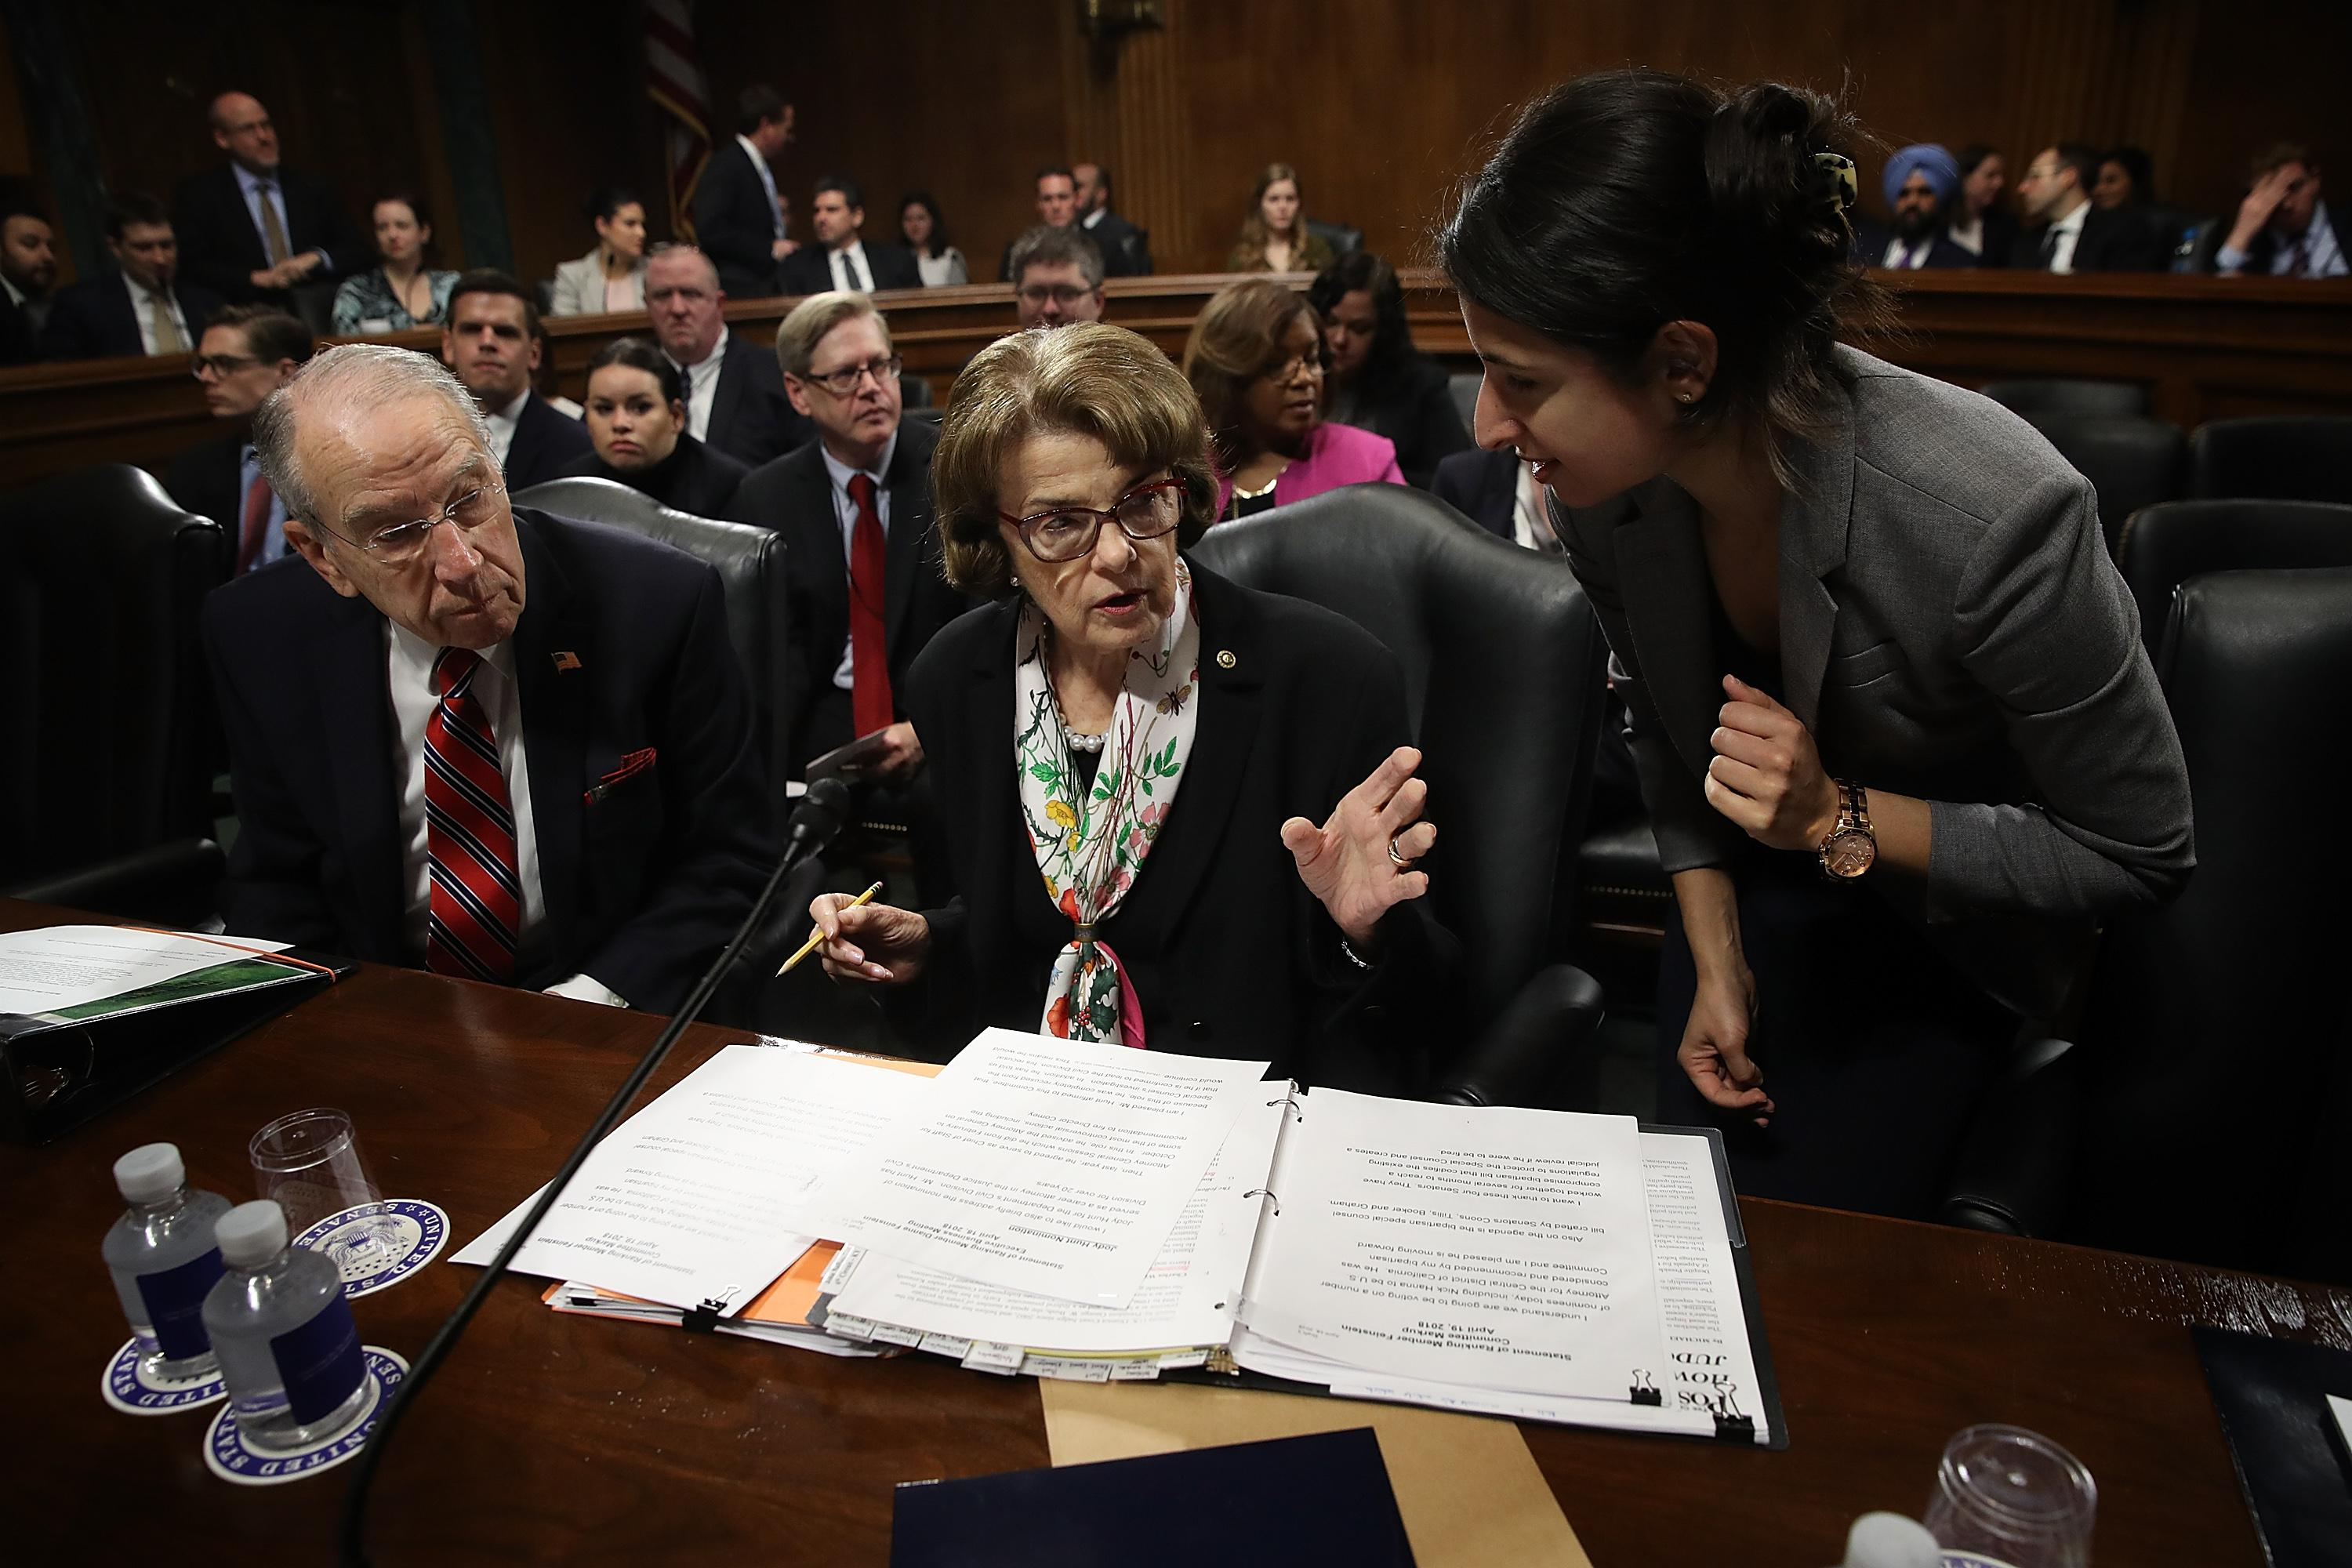 A staffer speaks to Sen. Dianne Feinstein at a committee hearing.